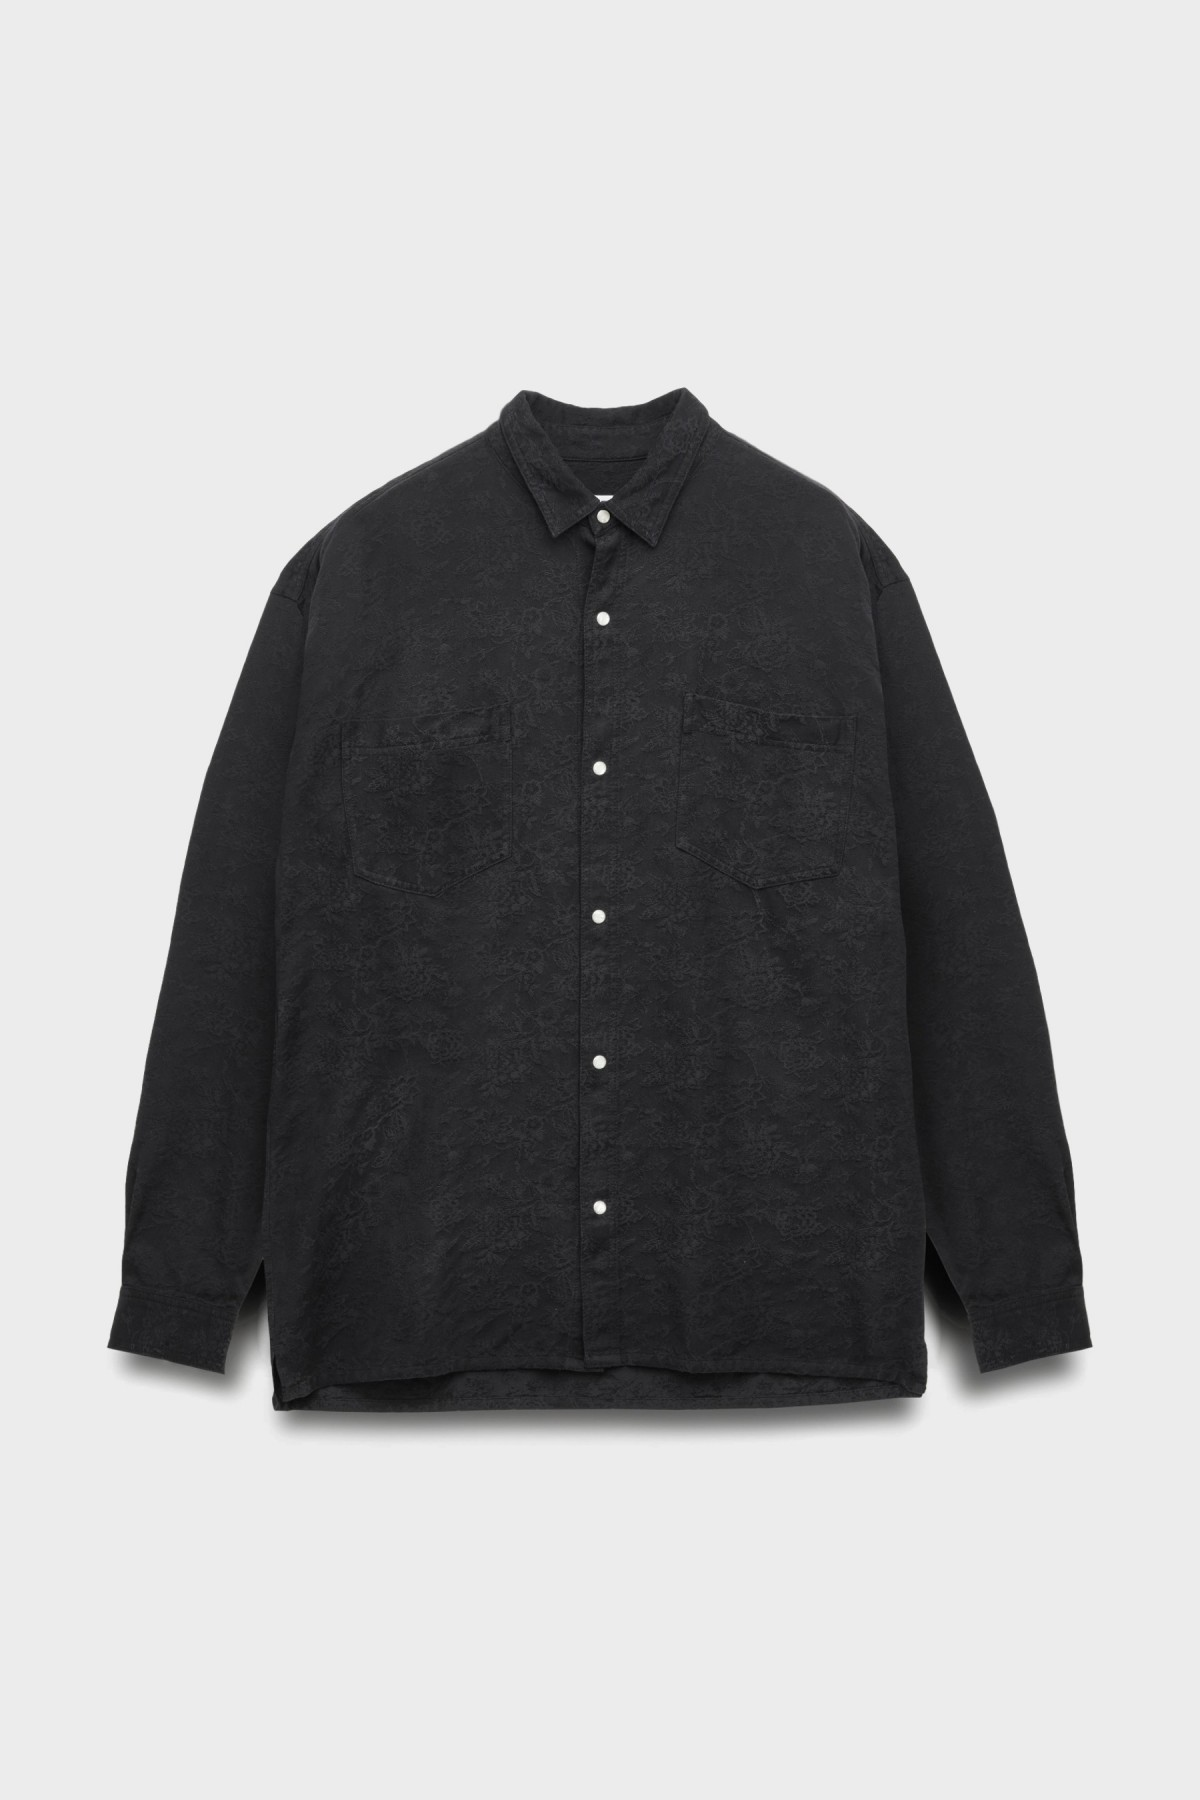 YMC You Must Create Ryder Overshirt in Black